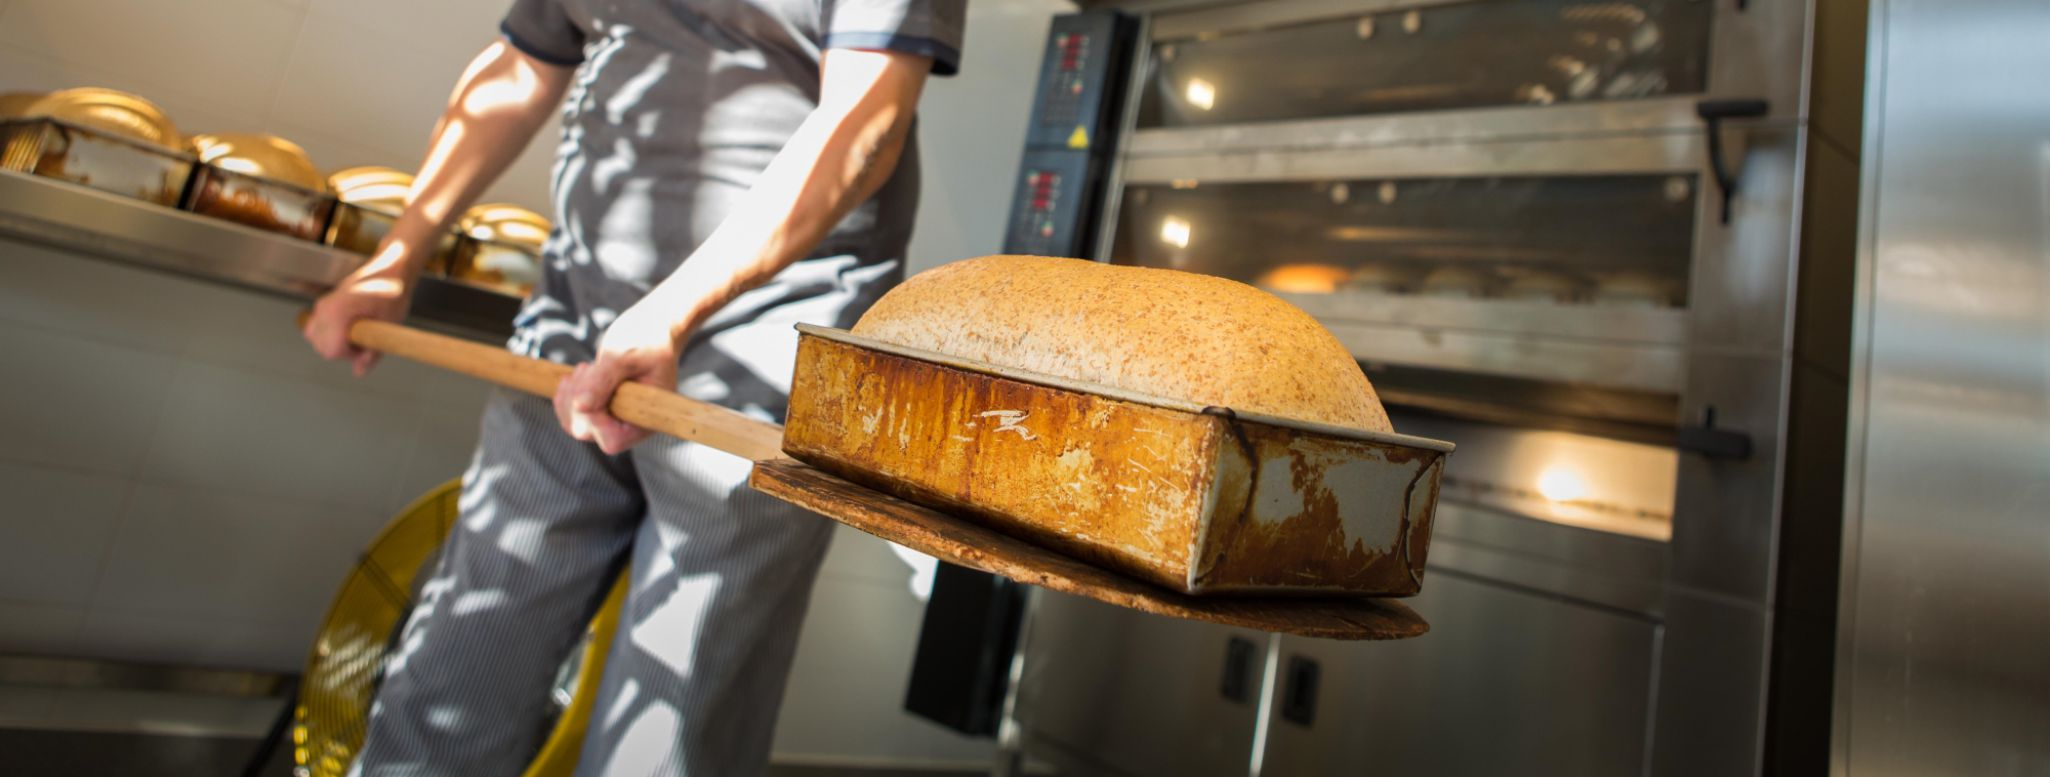 The freshly baked bread is removed from the oven.